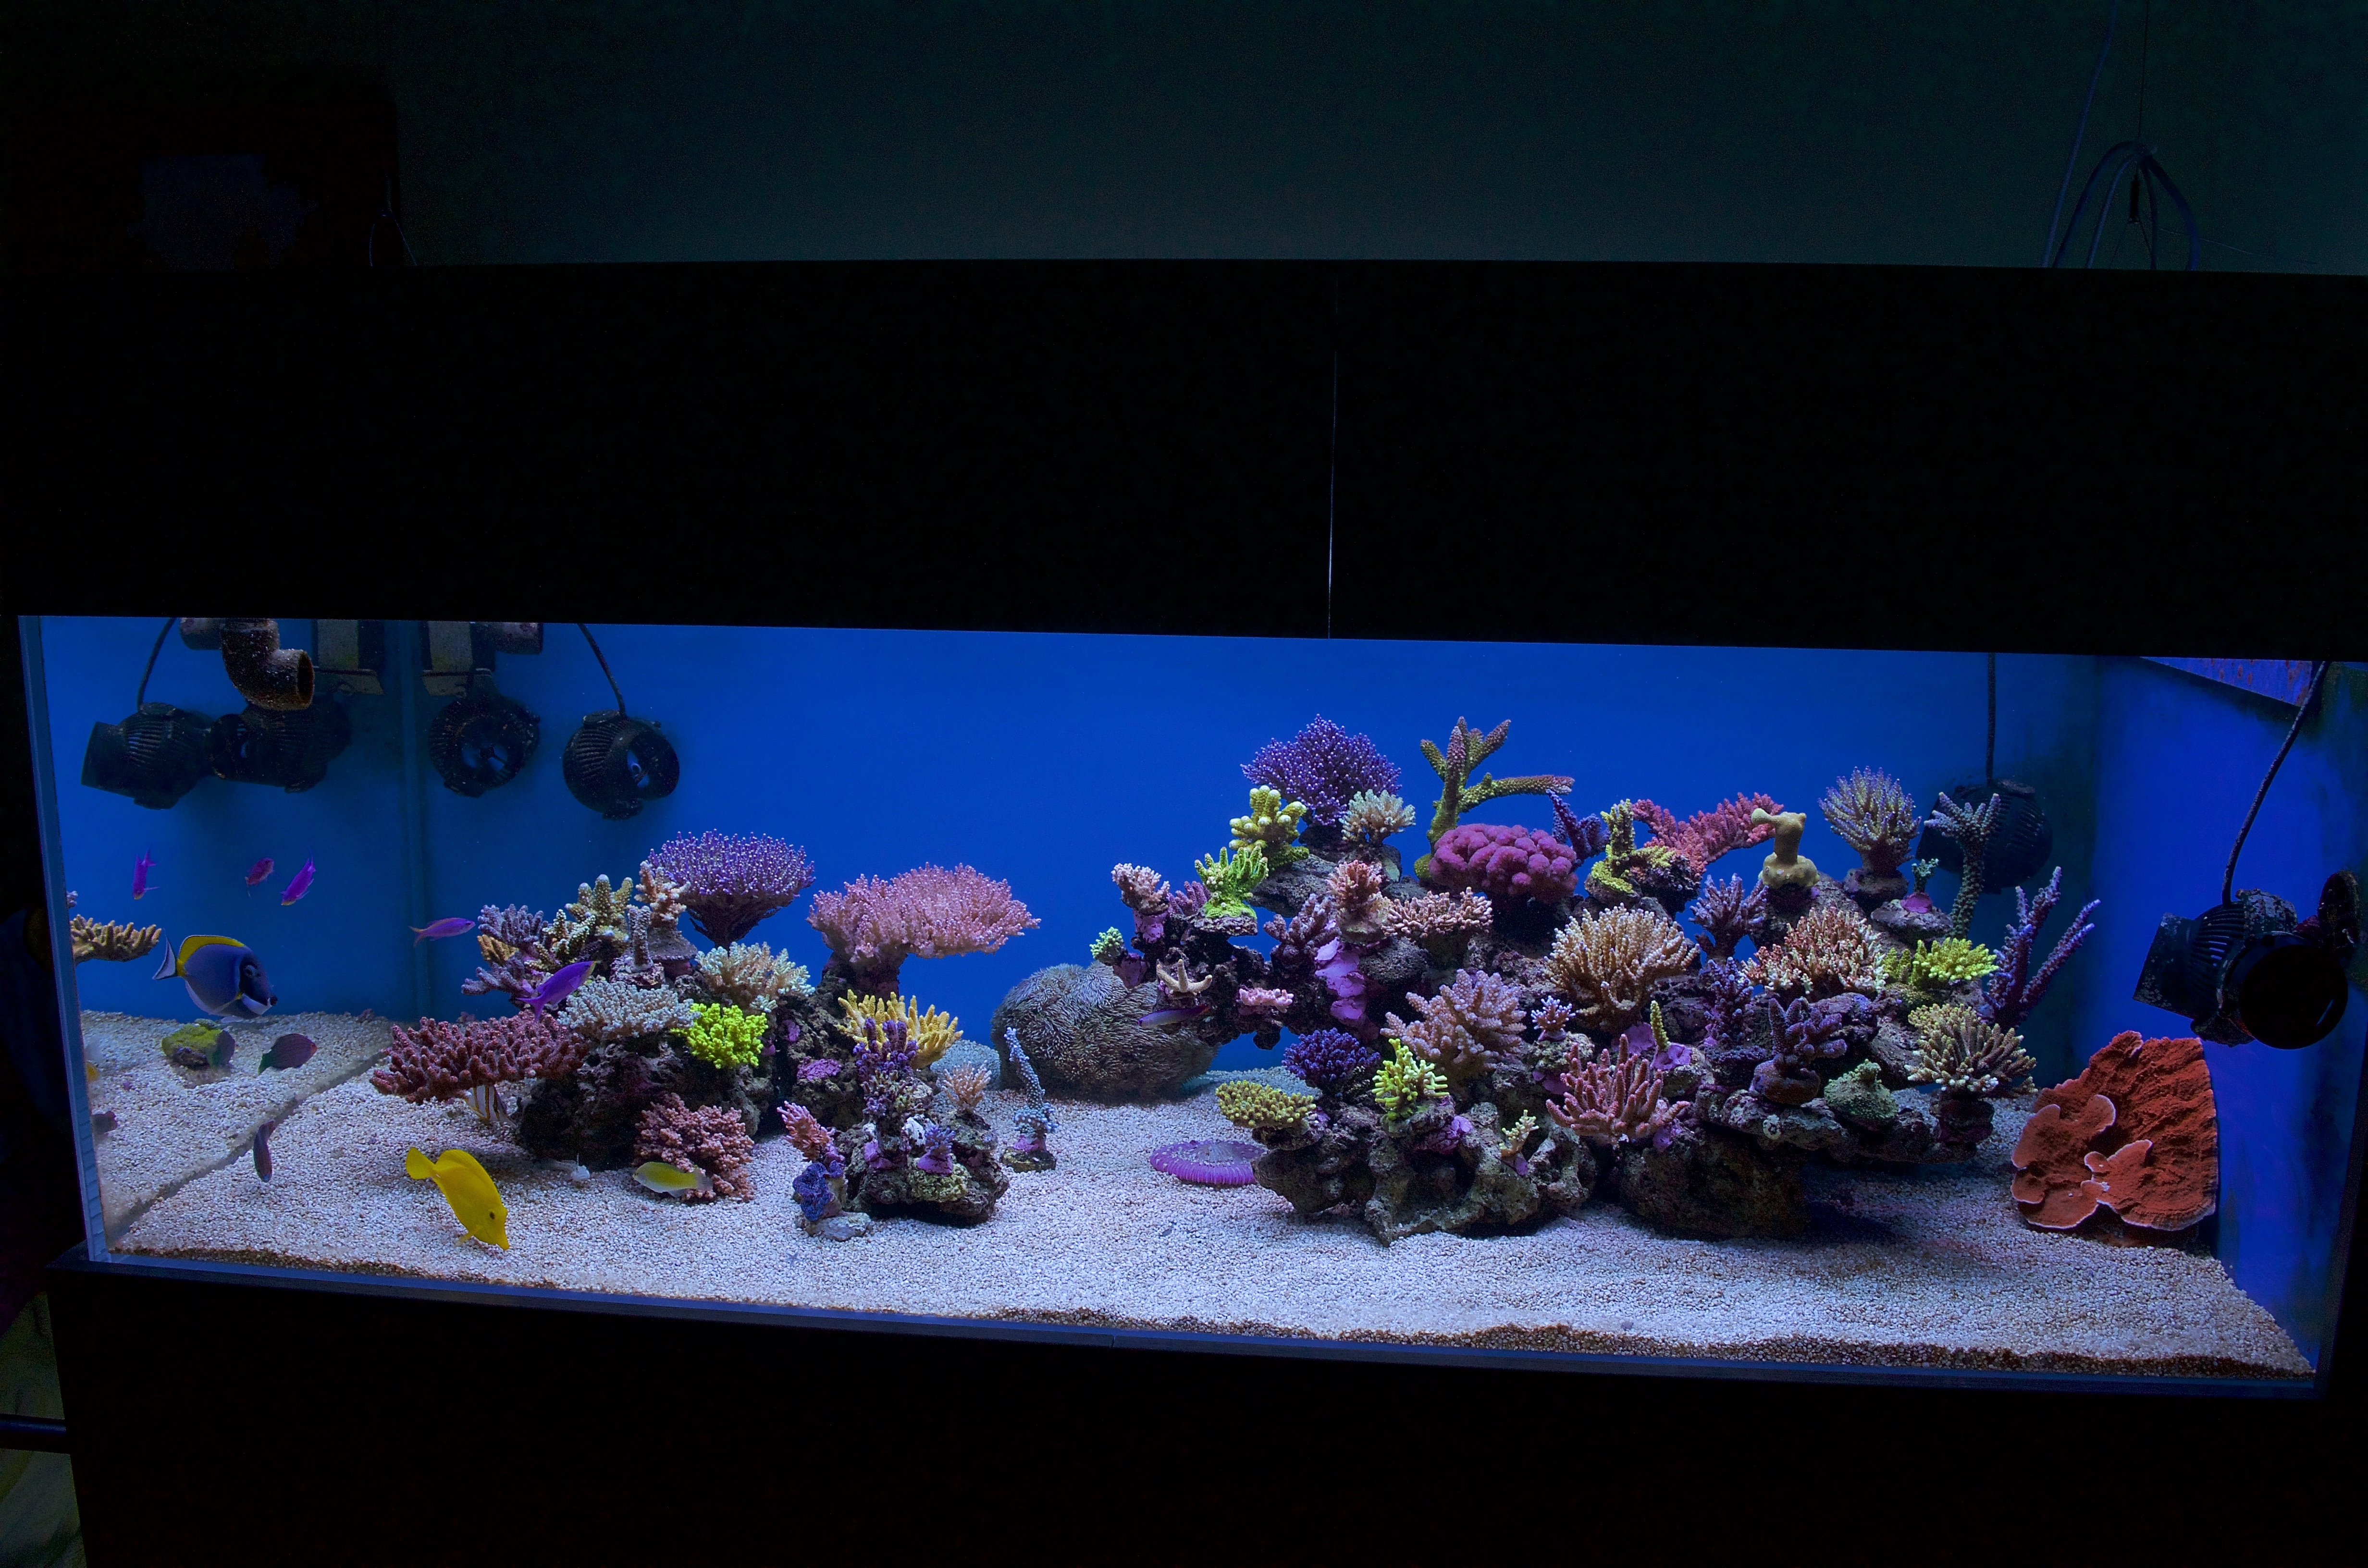 The 650l Reef Tank of Pawel Szember